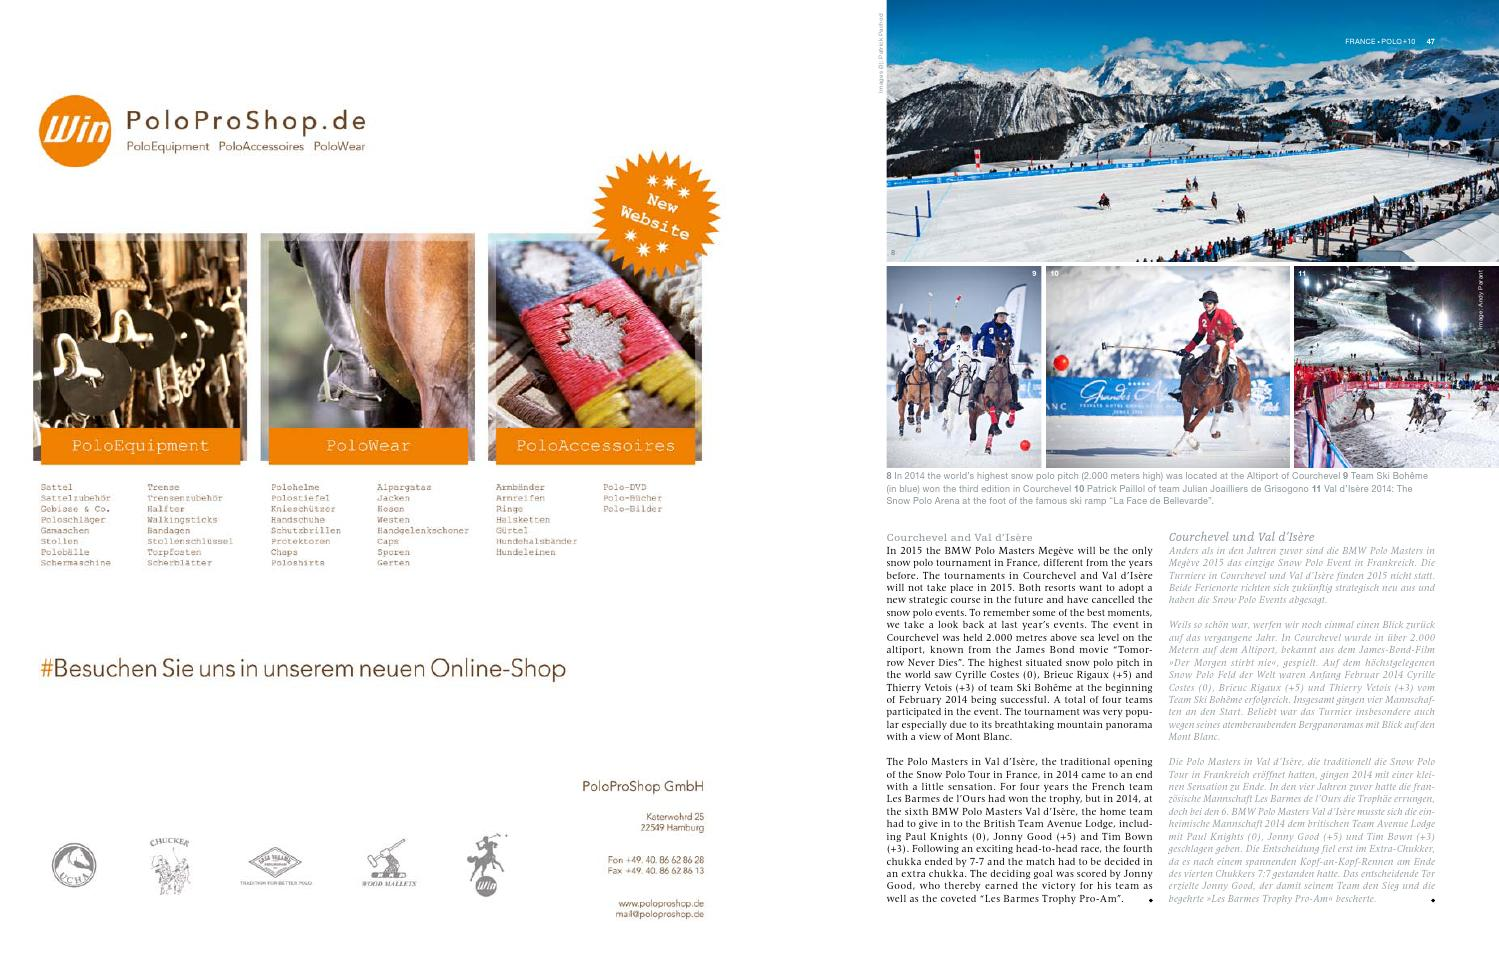 Garten 24 Online Polo 10 On Snow 2014 2015 By Hrcs Issuu